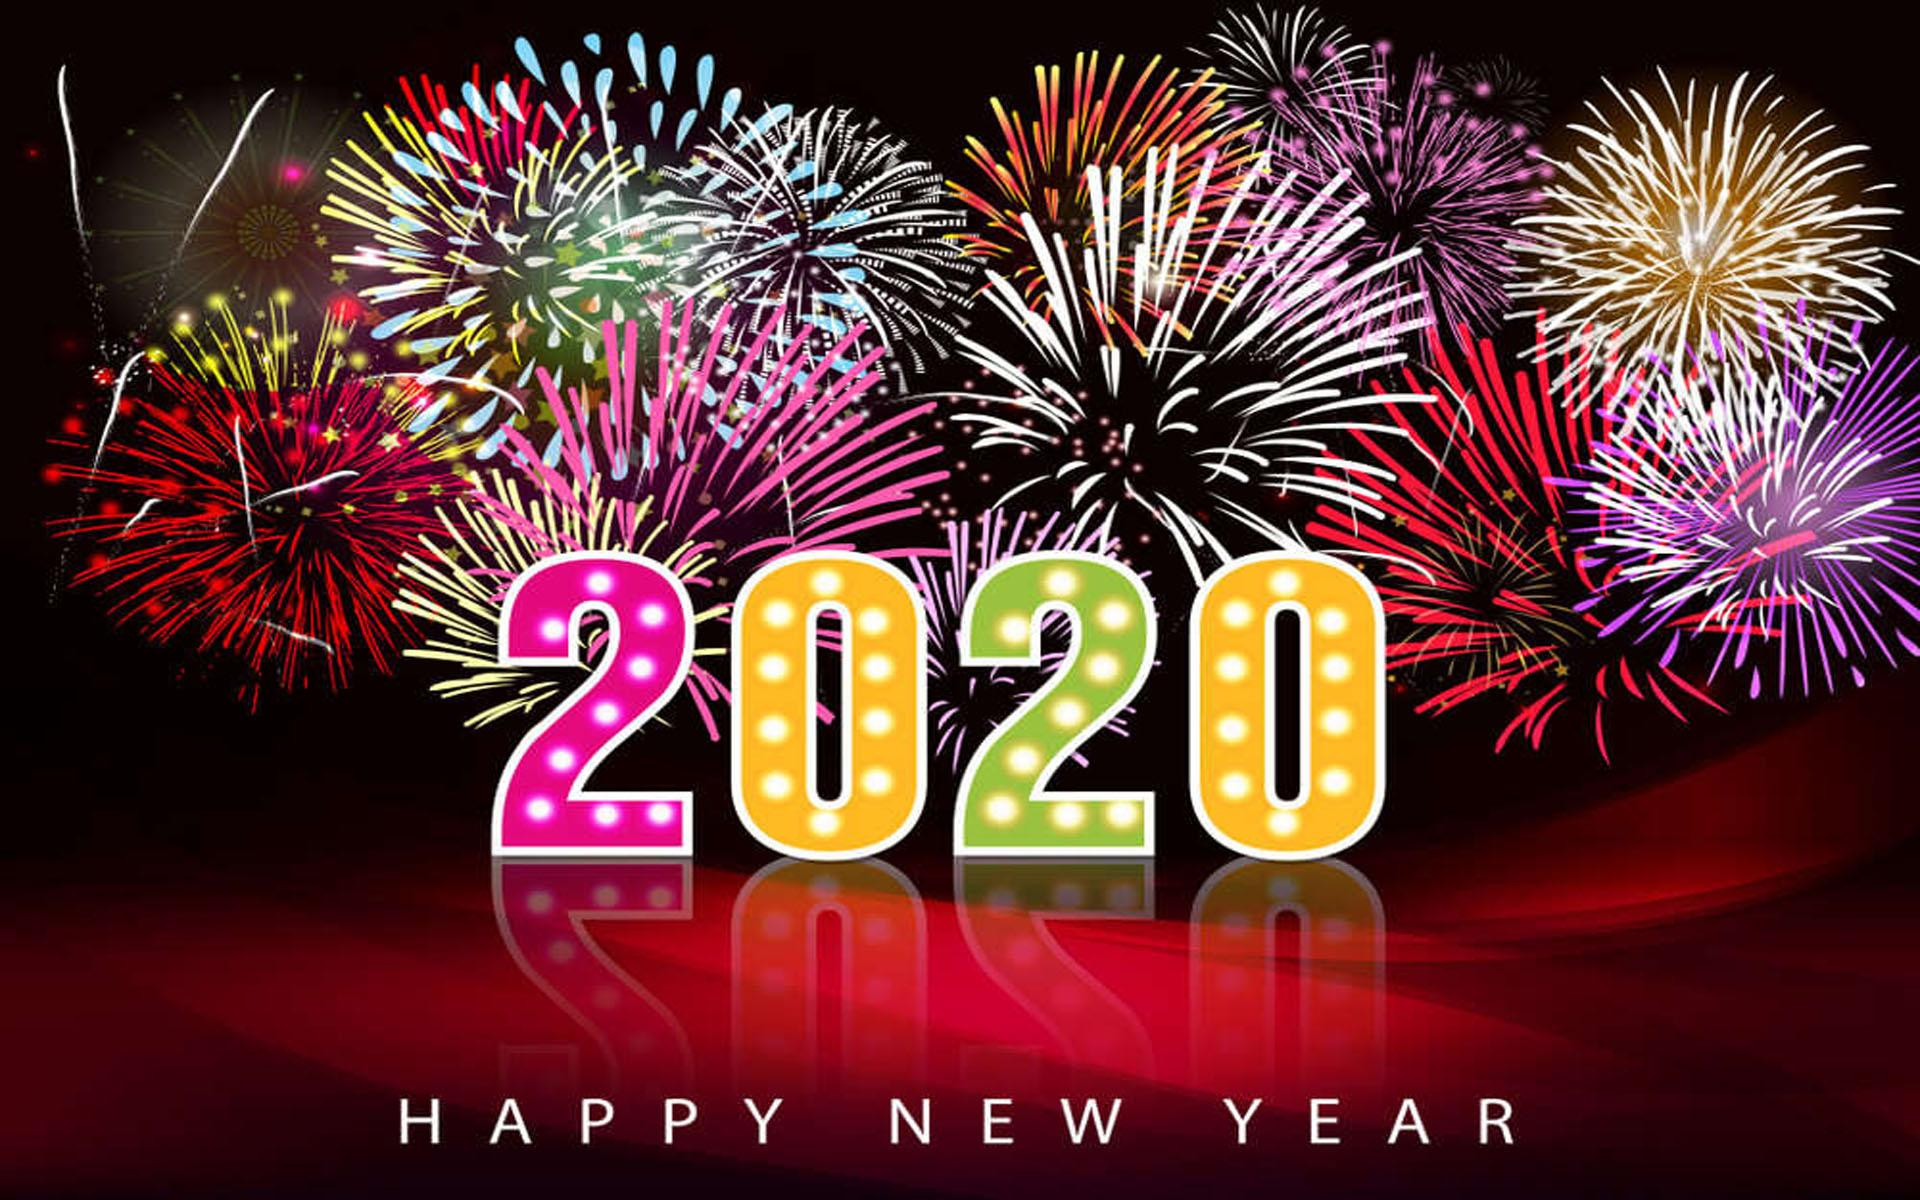 2020 New Years Eve Wallpapers - Wallpaper Cave